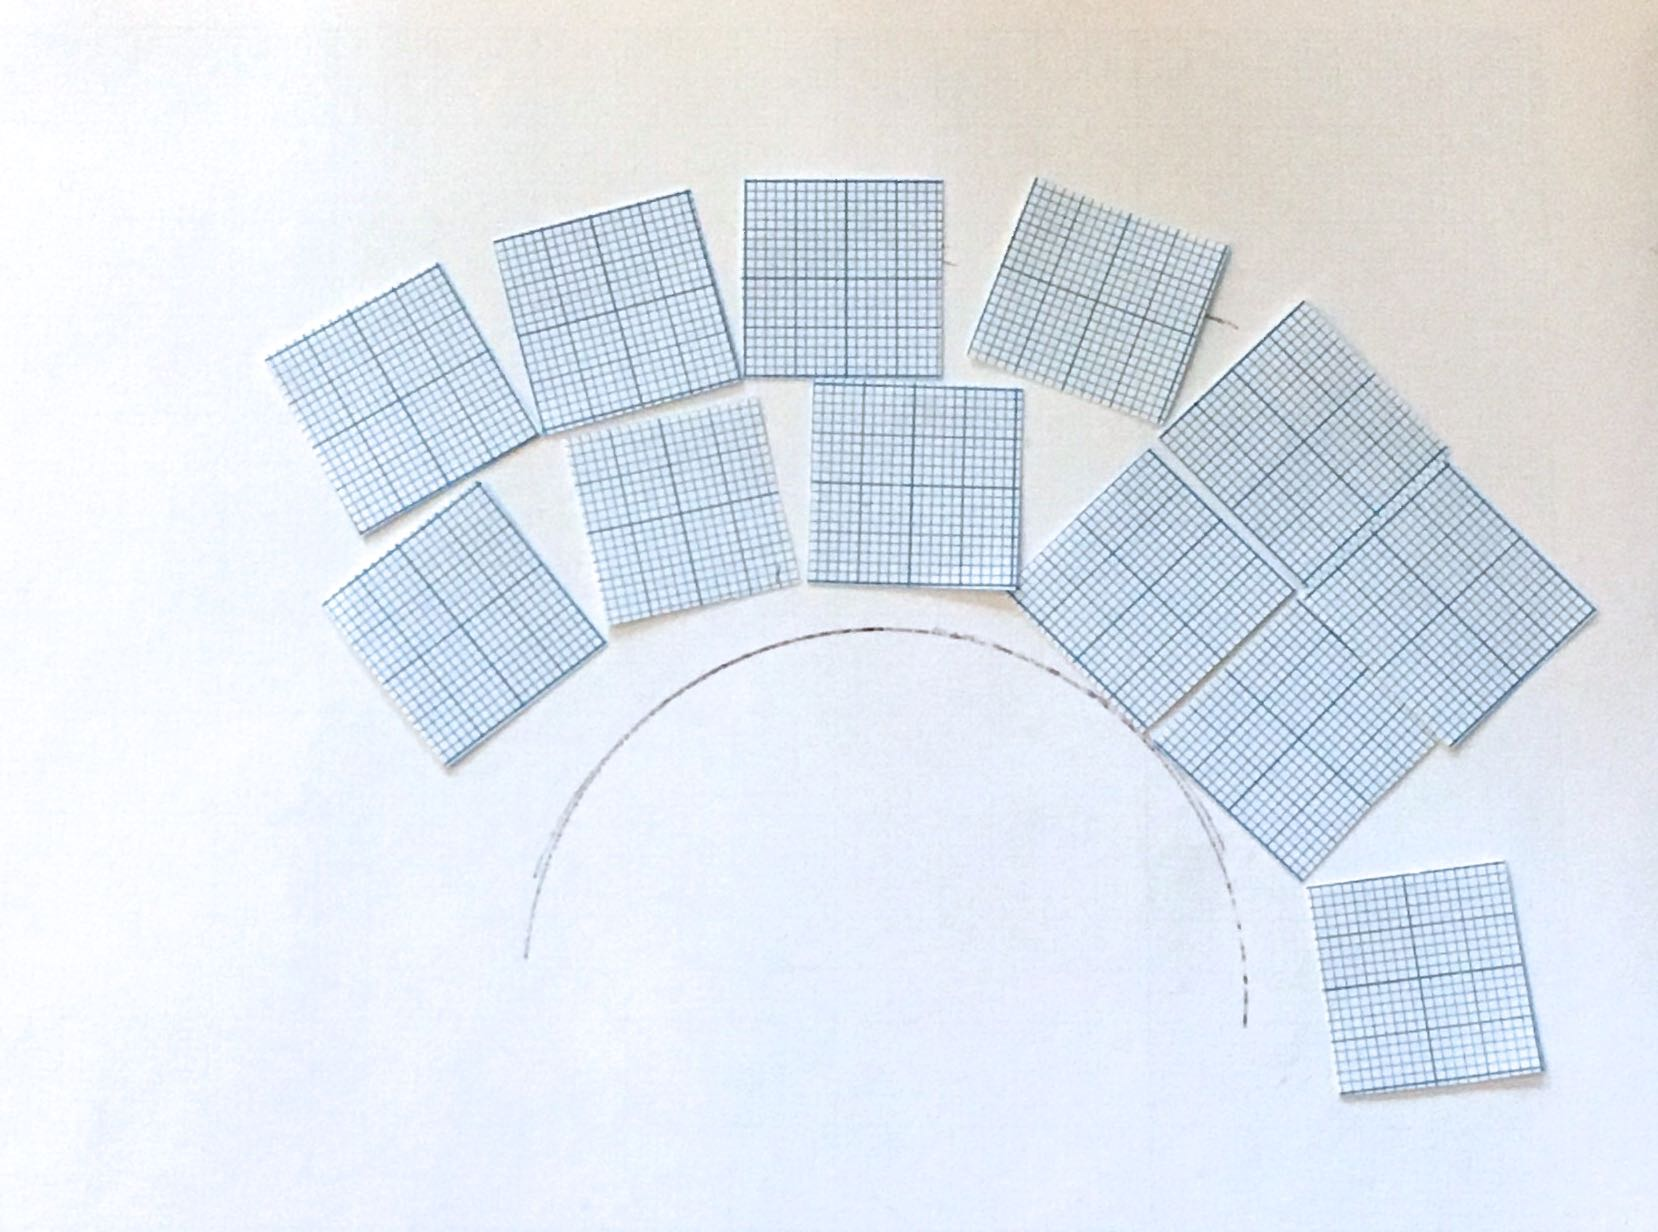 USING CUT OUT SQUARES FOR A MORE CONSIDERED PLAN